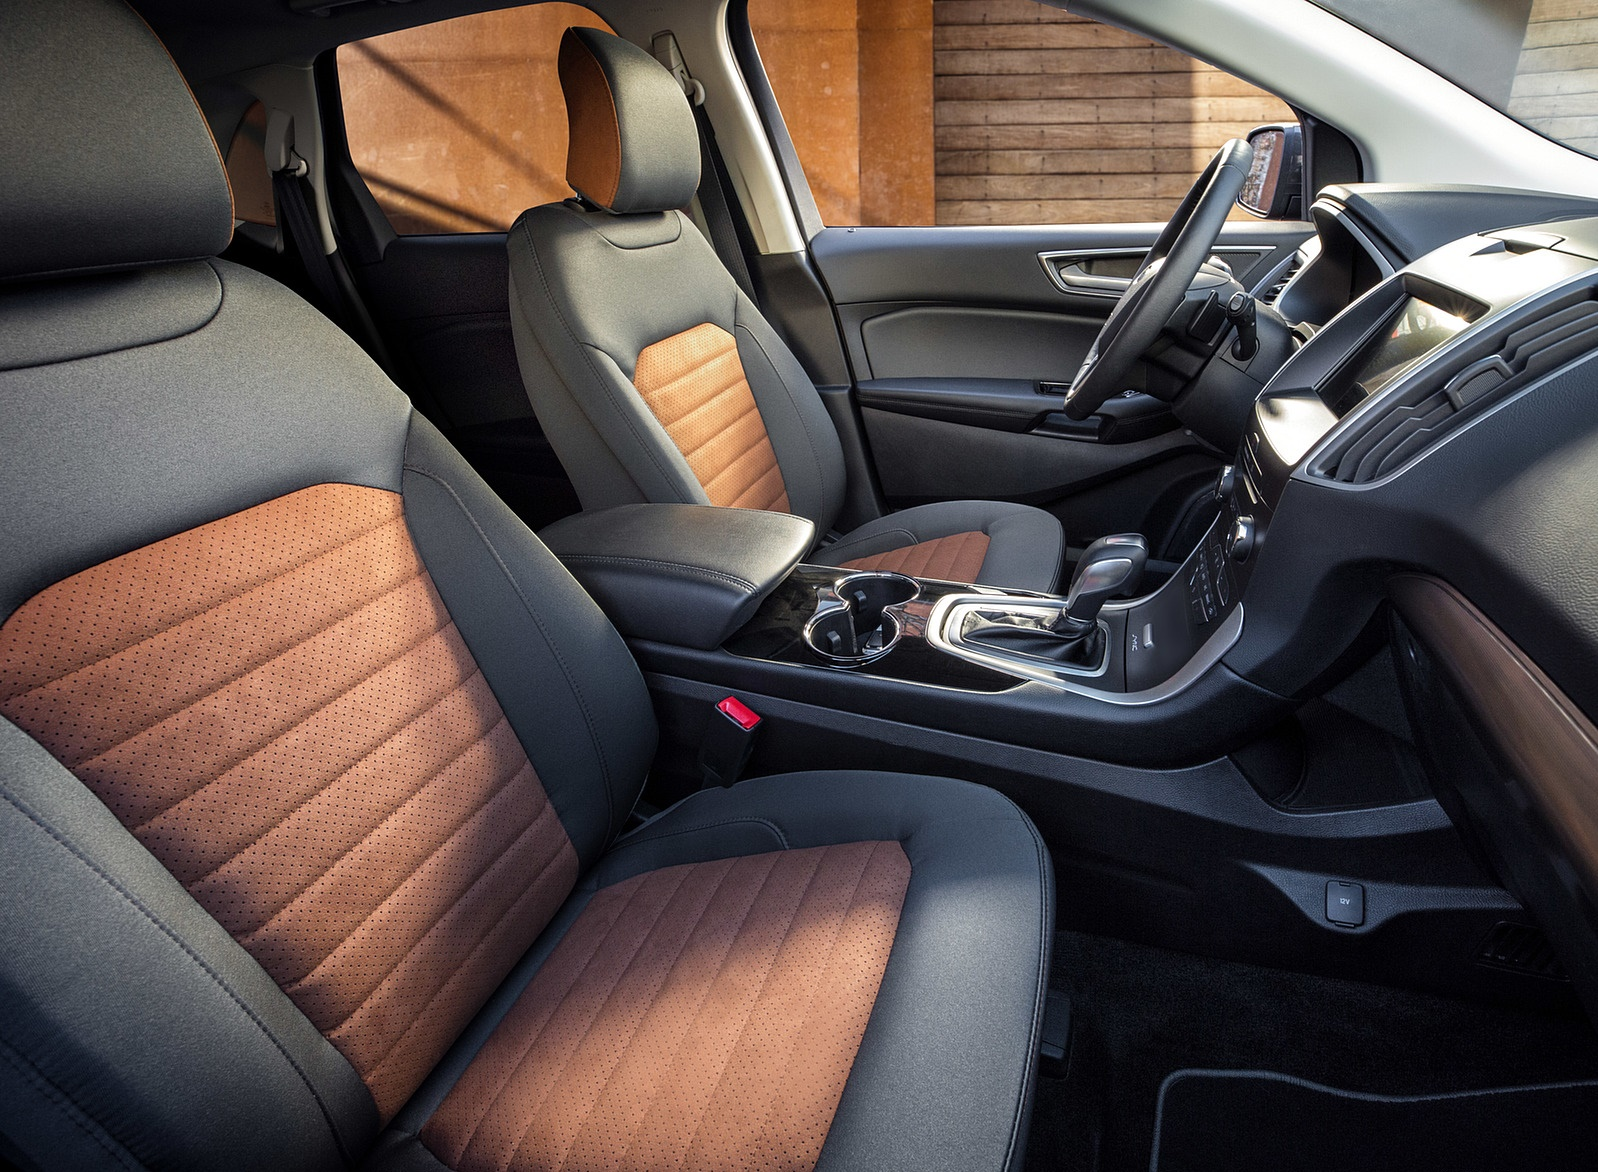 2018 Ford Edge SEL Sport Appearance Package Interior Seats Wallpaper (11)